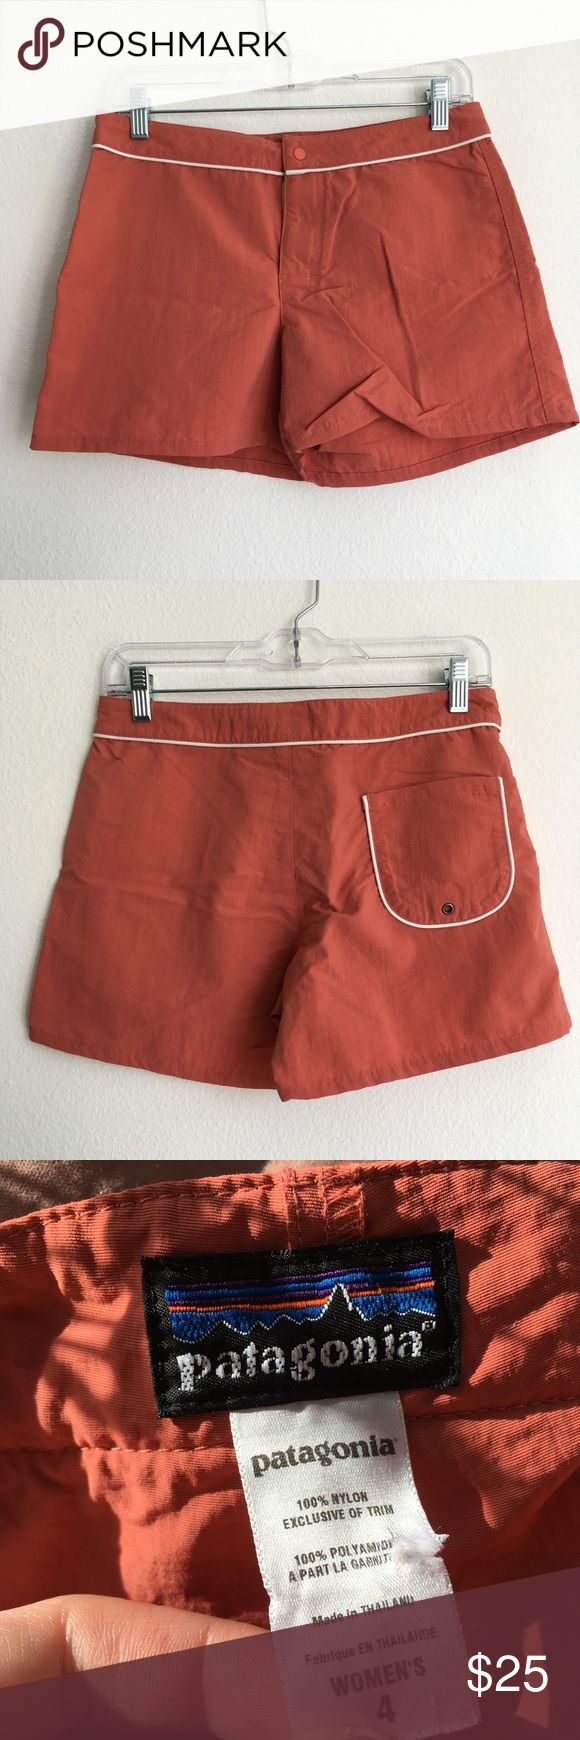 """Patagonia // Retro Board Shorts Retro nylon Patagonia board shorts. Salmon in color. Single pocket at back. Snap and zip closure. Excellent used condition, no flaws, non-smoking home.  Measurements laid flat - Waist 15"""" - Rise 9 - Inseam 4""""  No trades, please :) A4 Patagonia Shorts"""